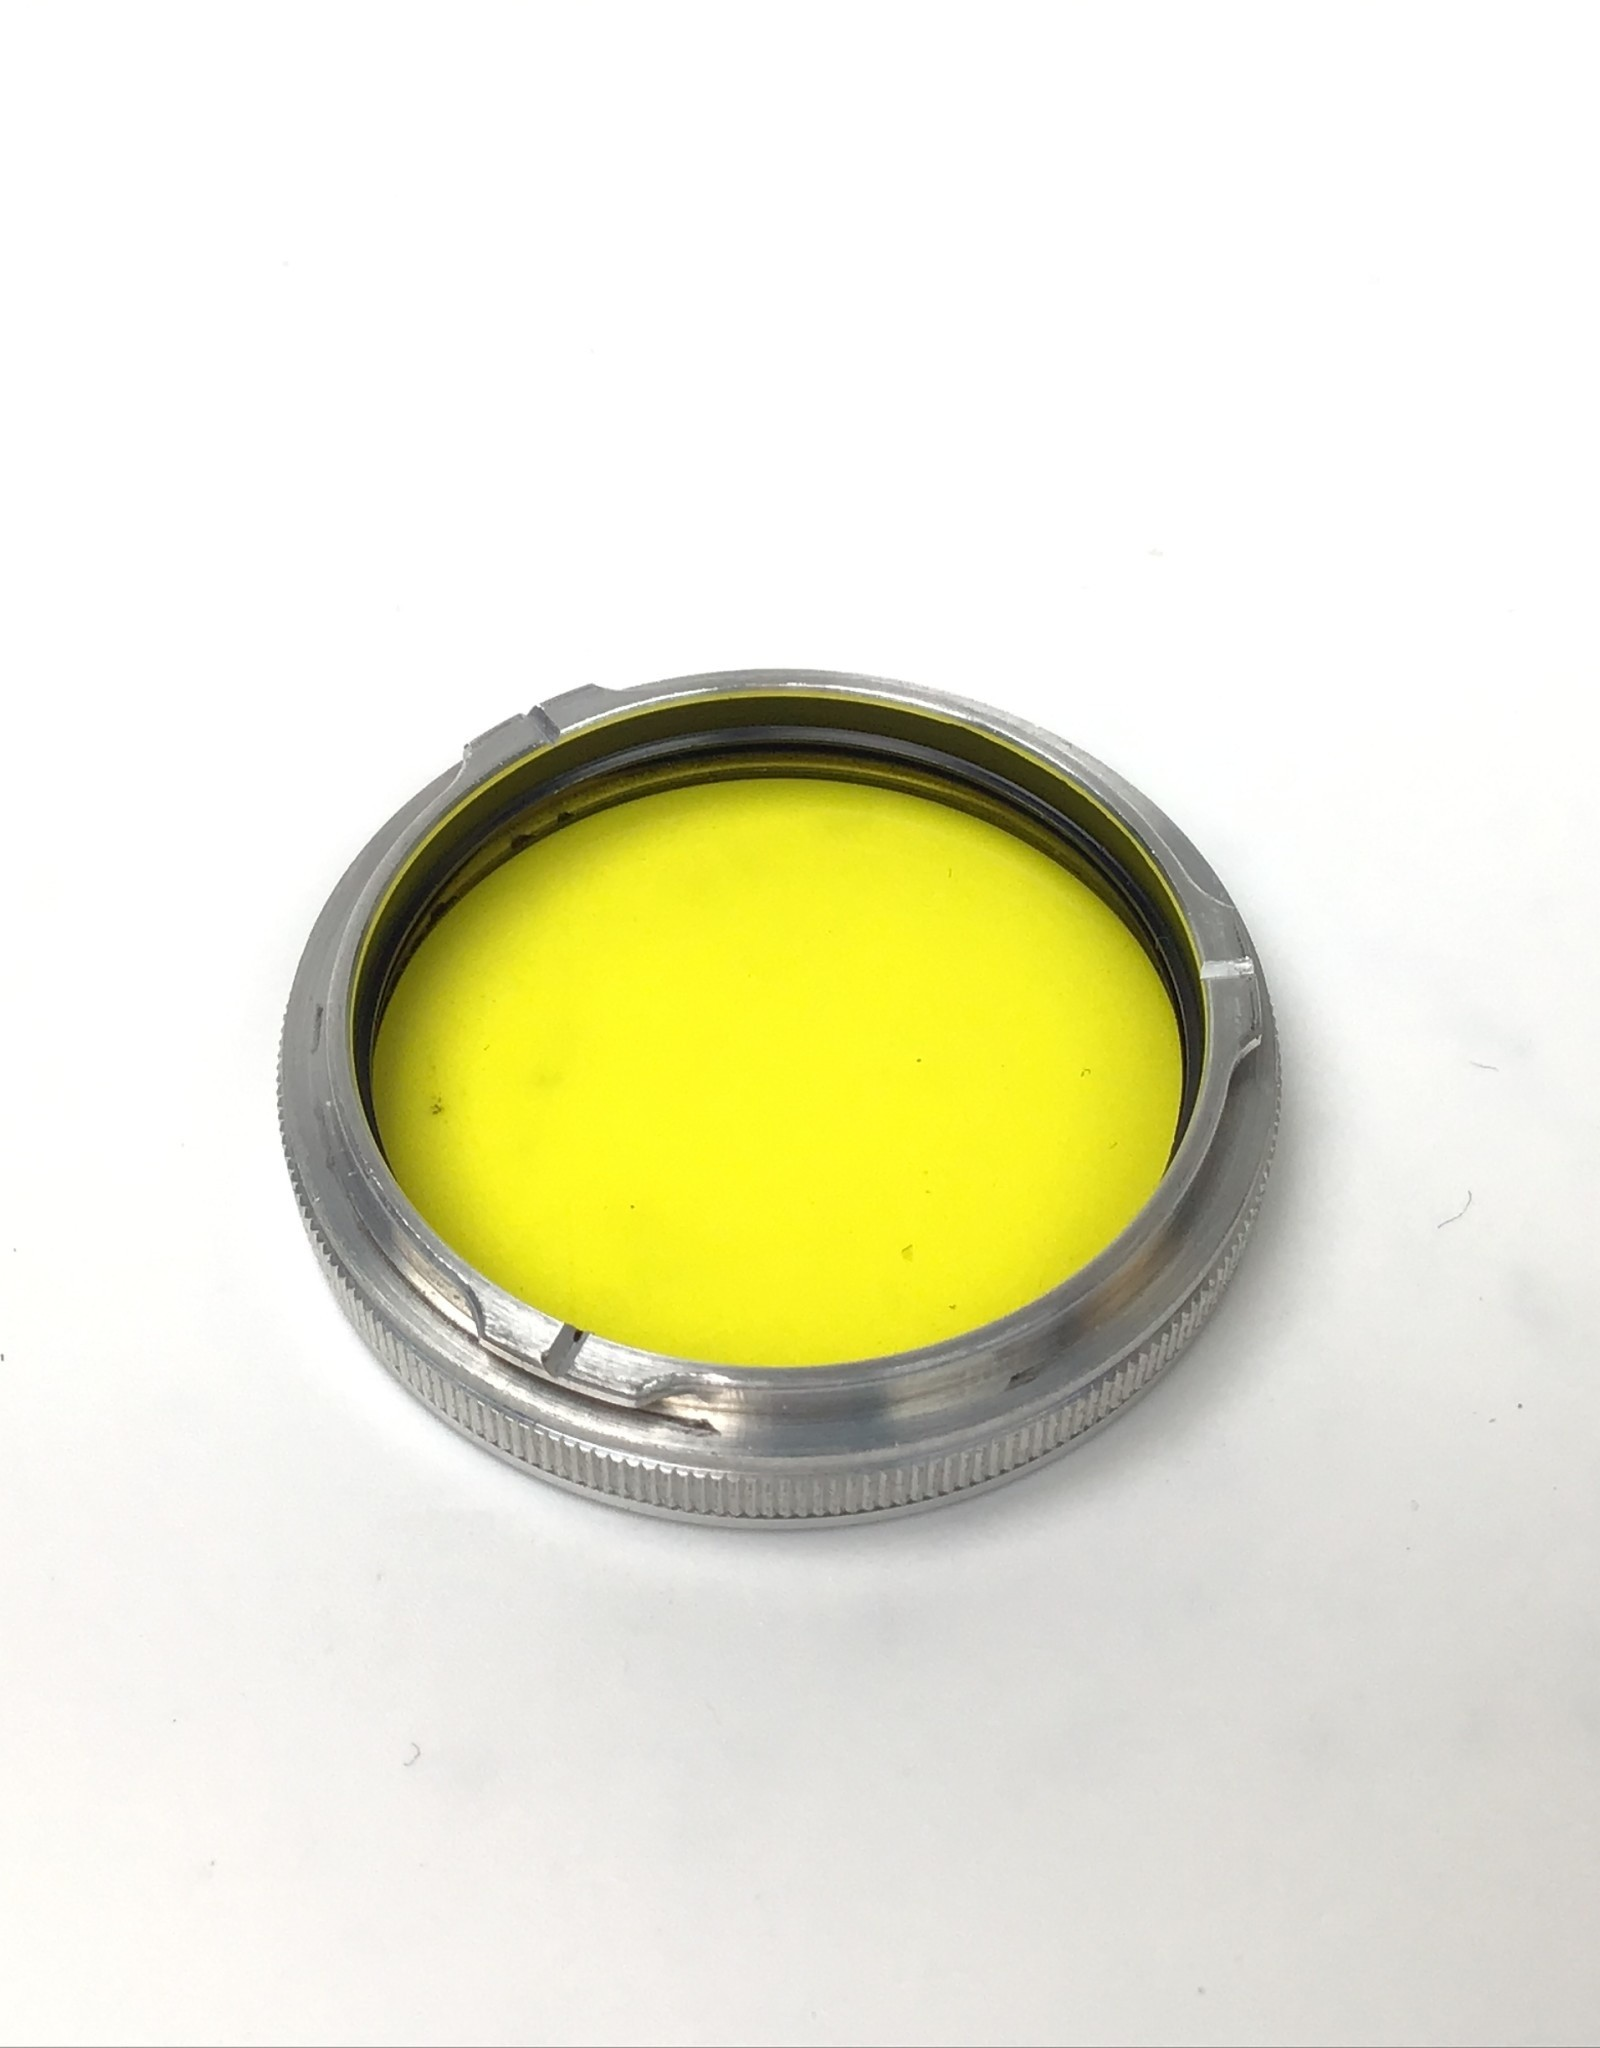 Rollei Rollei Bay 1 Gelb Mittel Yellow Filter with Case and box Used EX